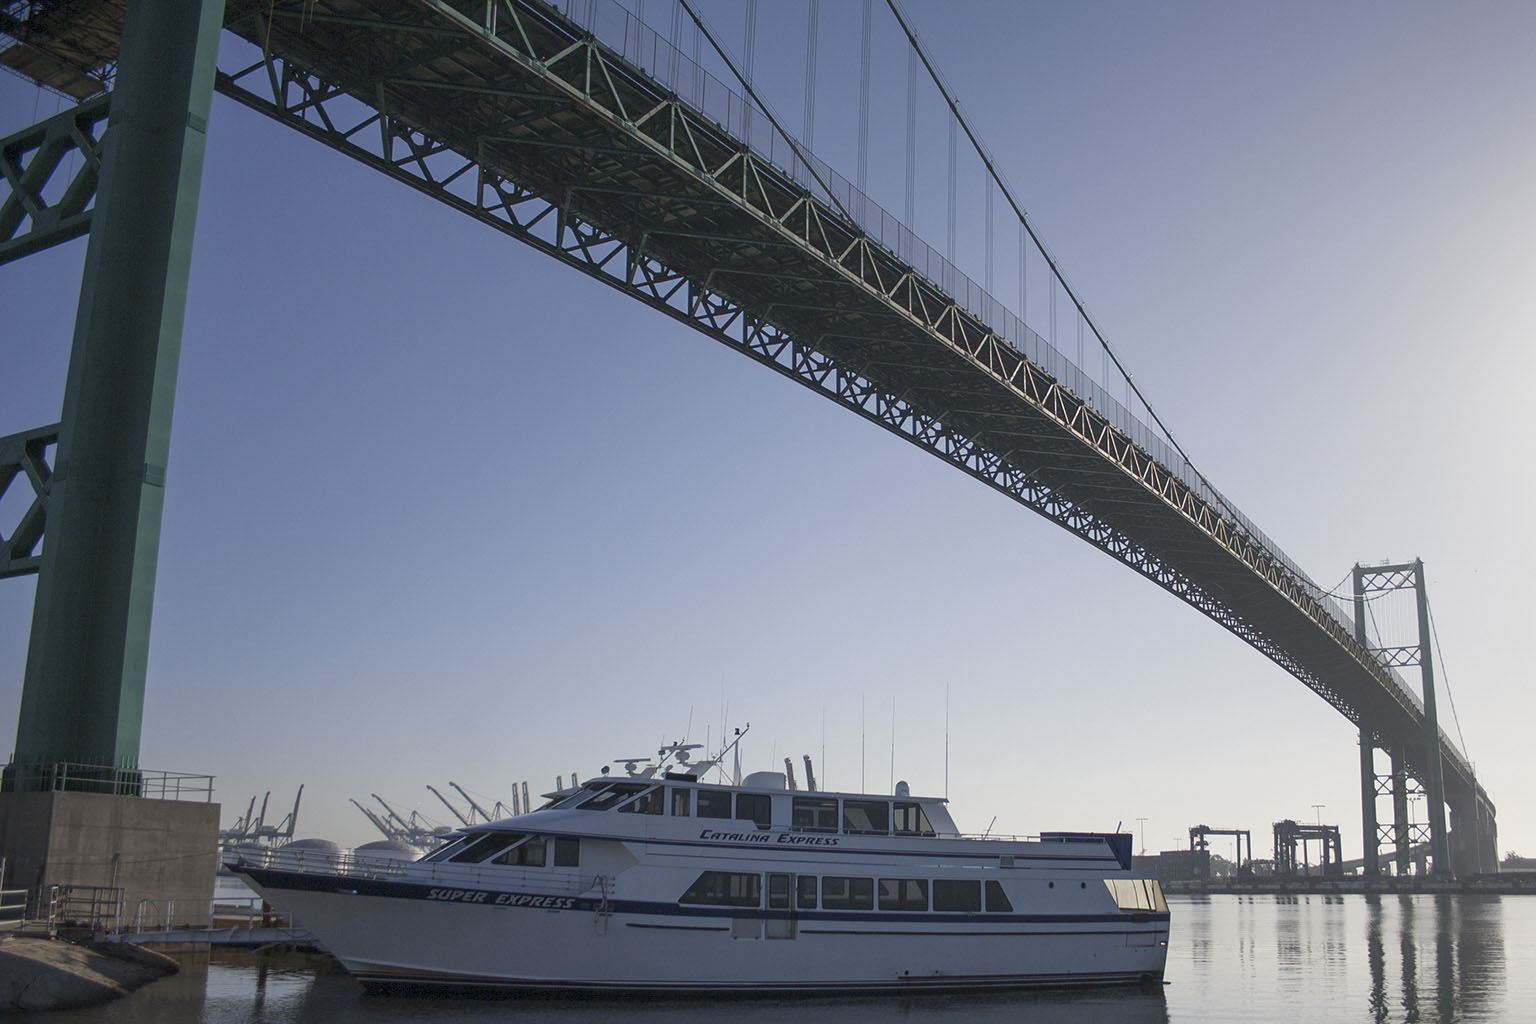 Catalina Express under the Vincent Thomas Bridge